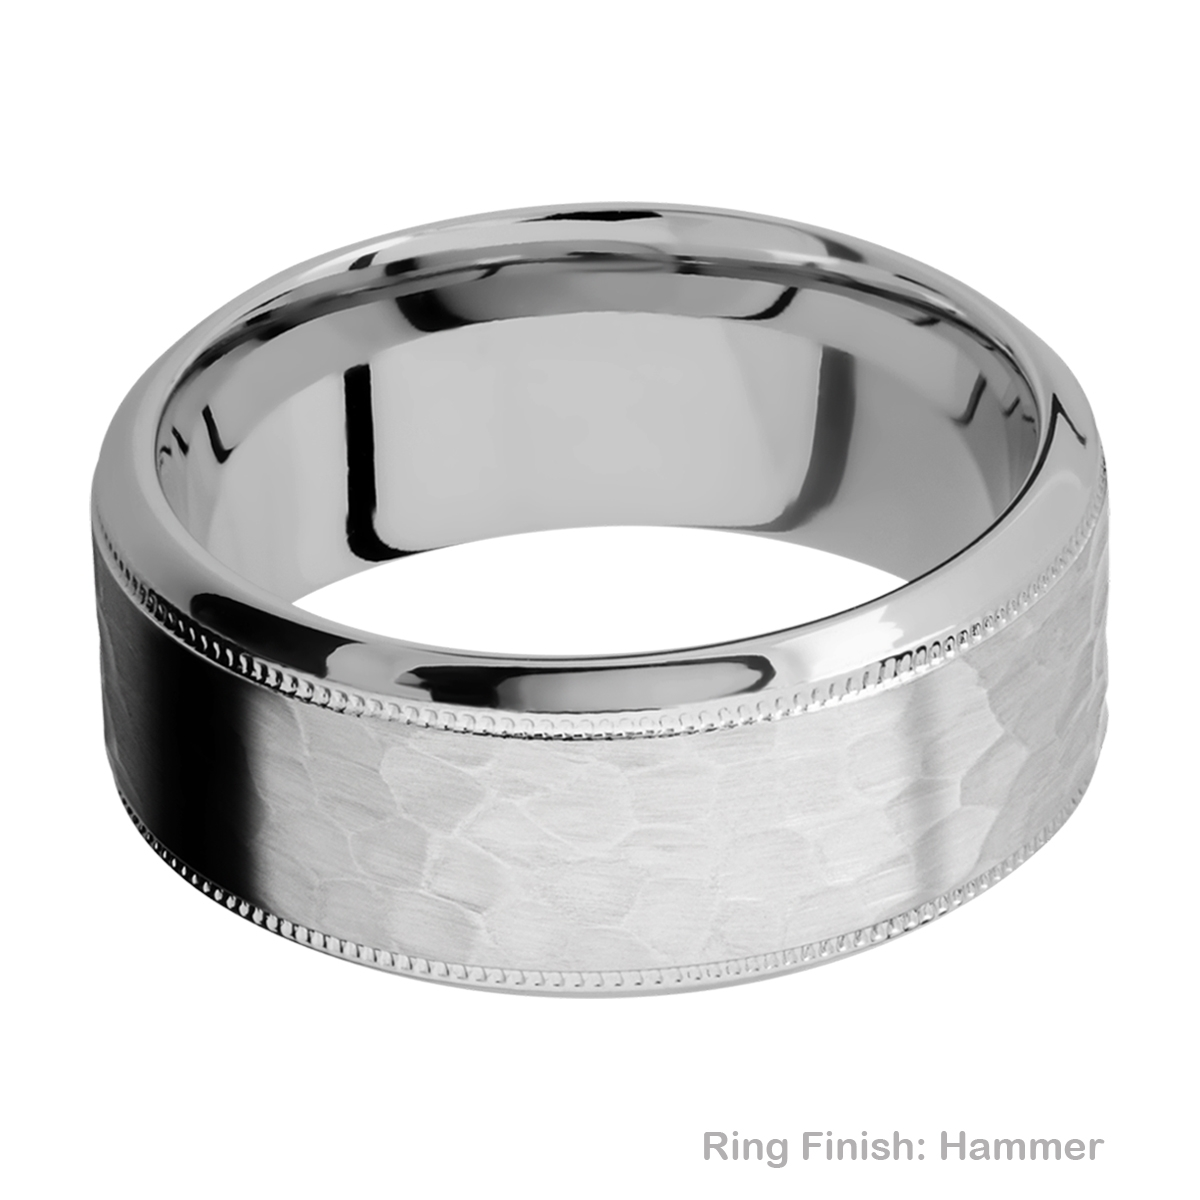 Lashbrook 9HB2UMIL Titanium Wedding Ring or Band Alternative View 10